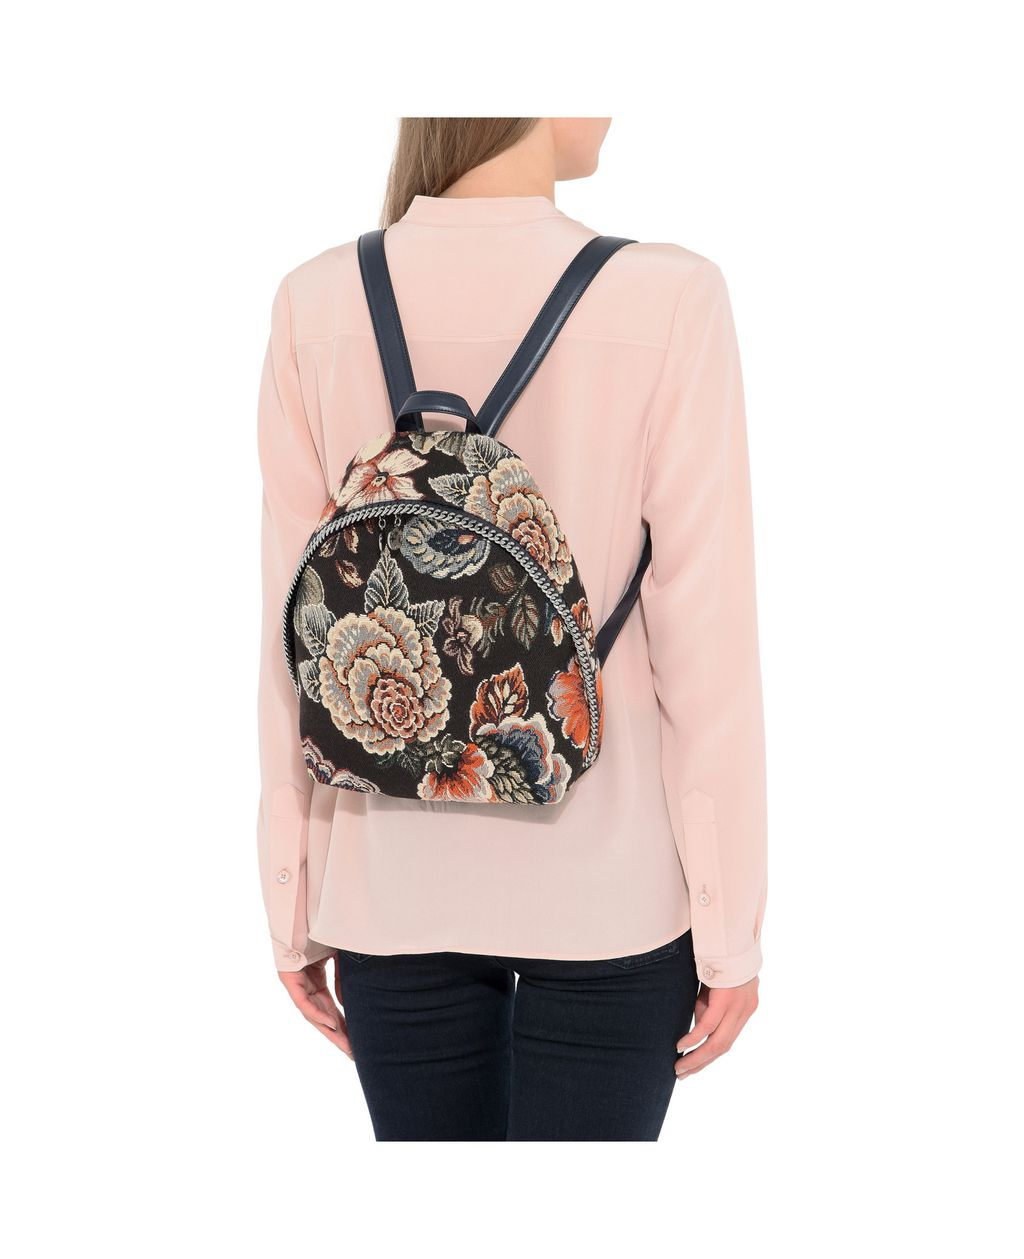 Tapestry Small Backpack - STELLA MCCARTNEY